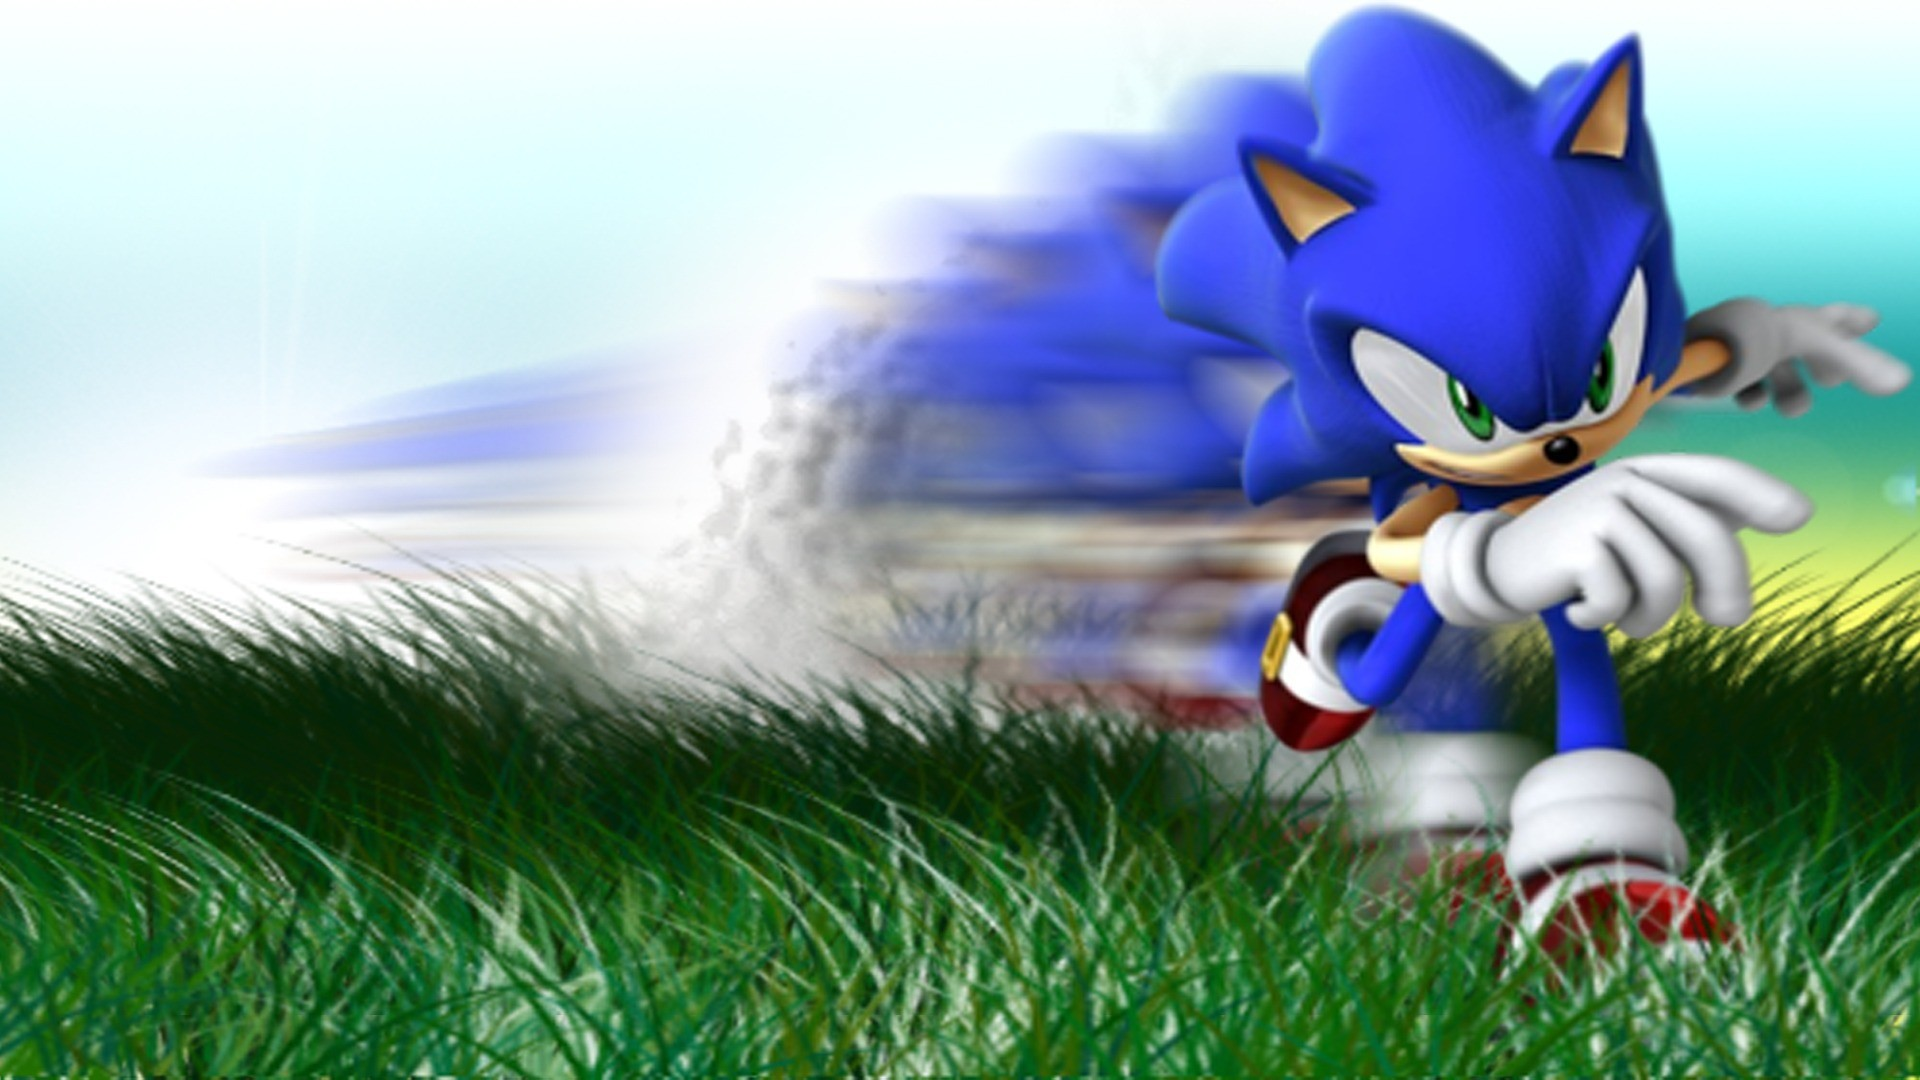 Res: 1920x1080, Sonic Wallpaper Cartoons Anime Animated